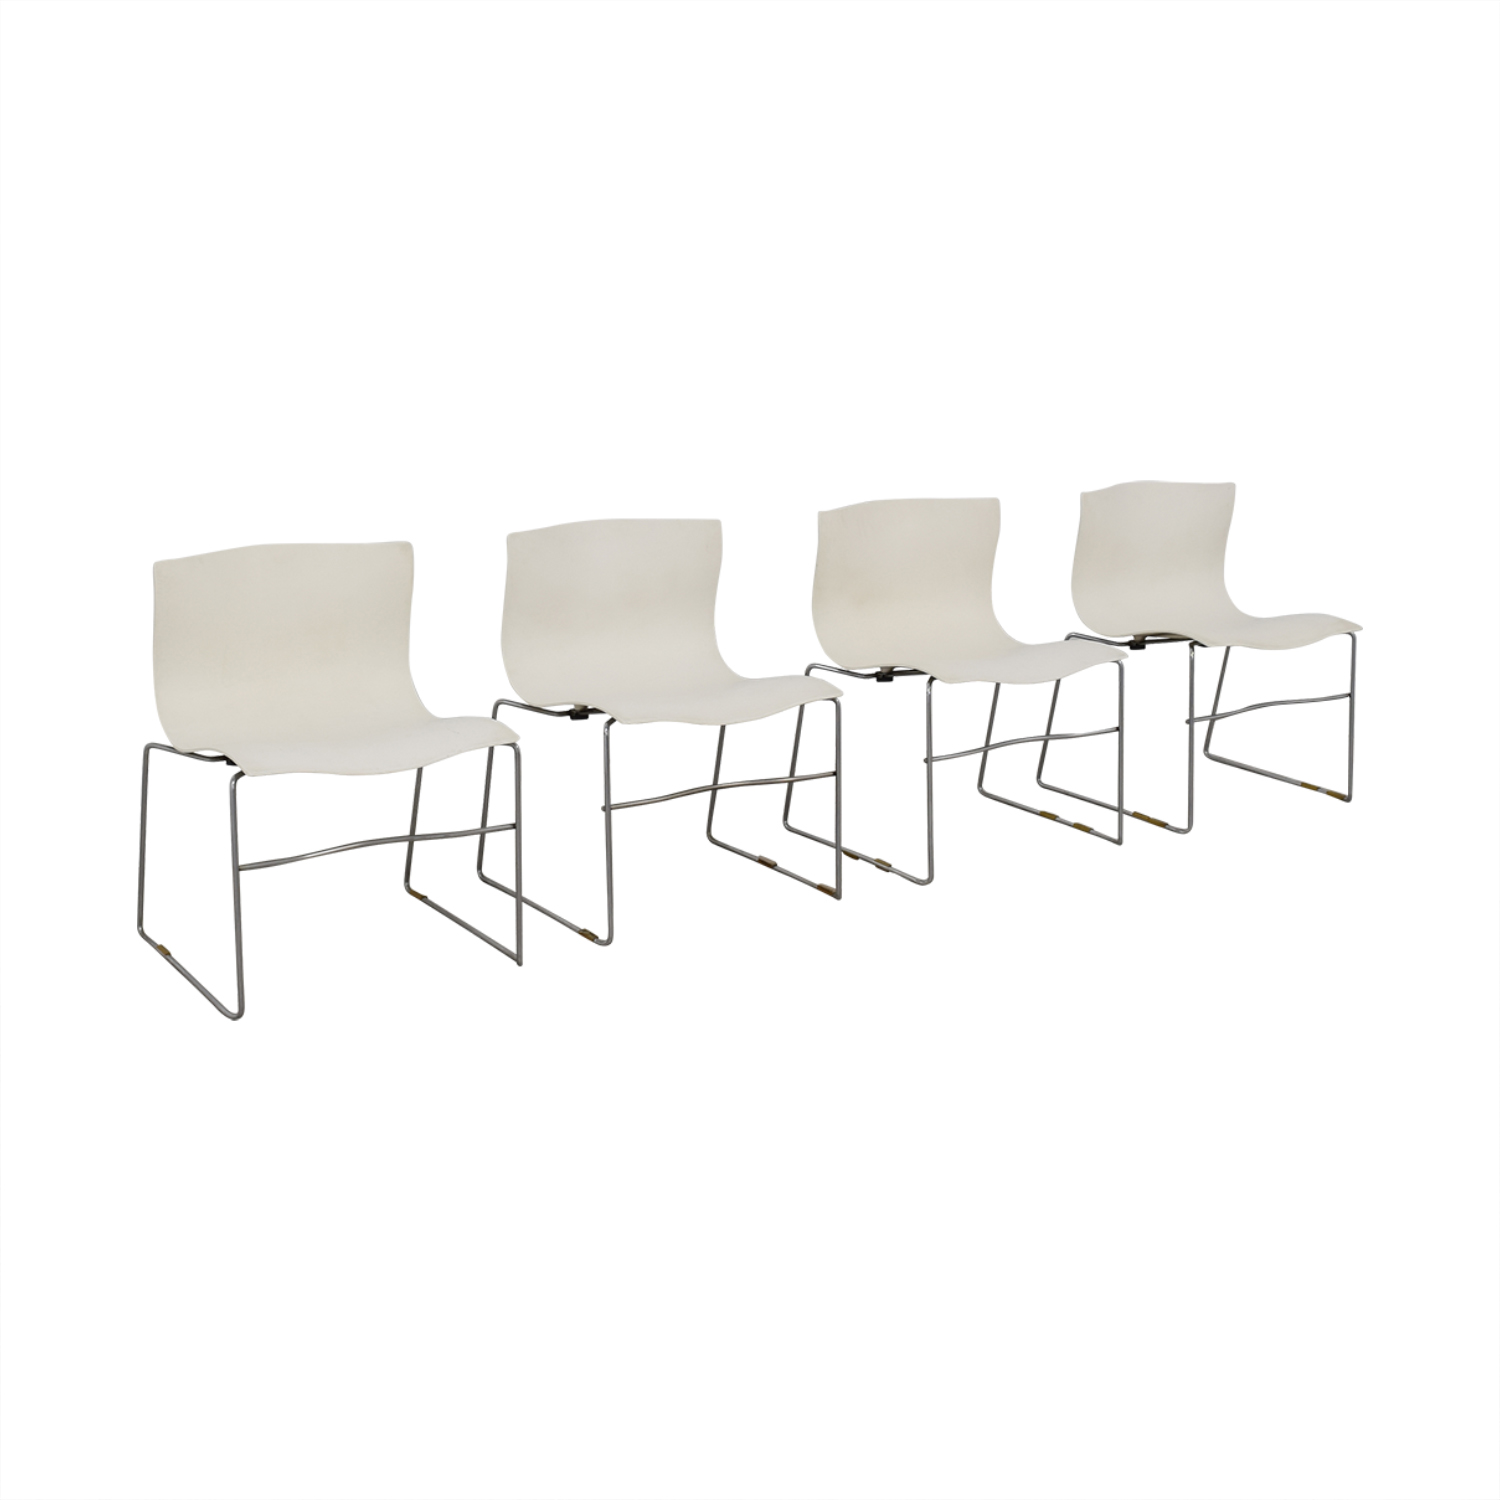 Knoll Vignelli Designs 1983 White Handkerchief Chairs Knoll